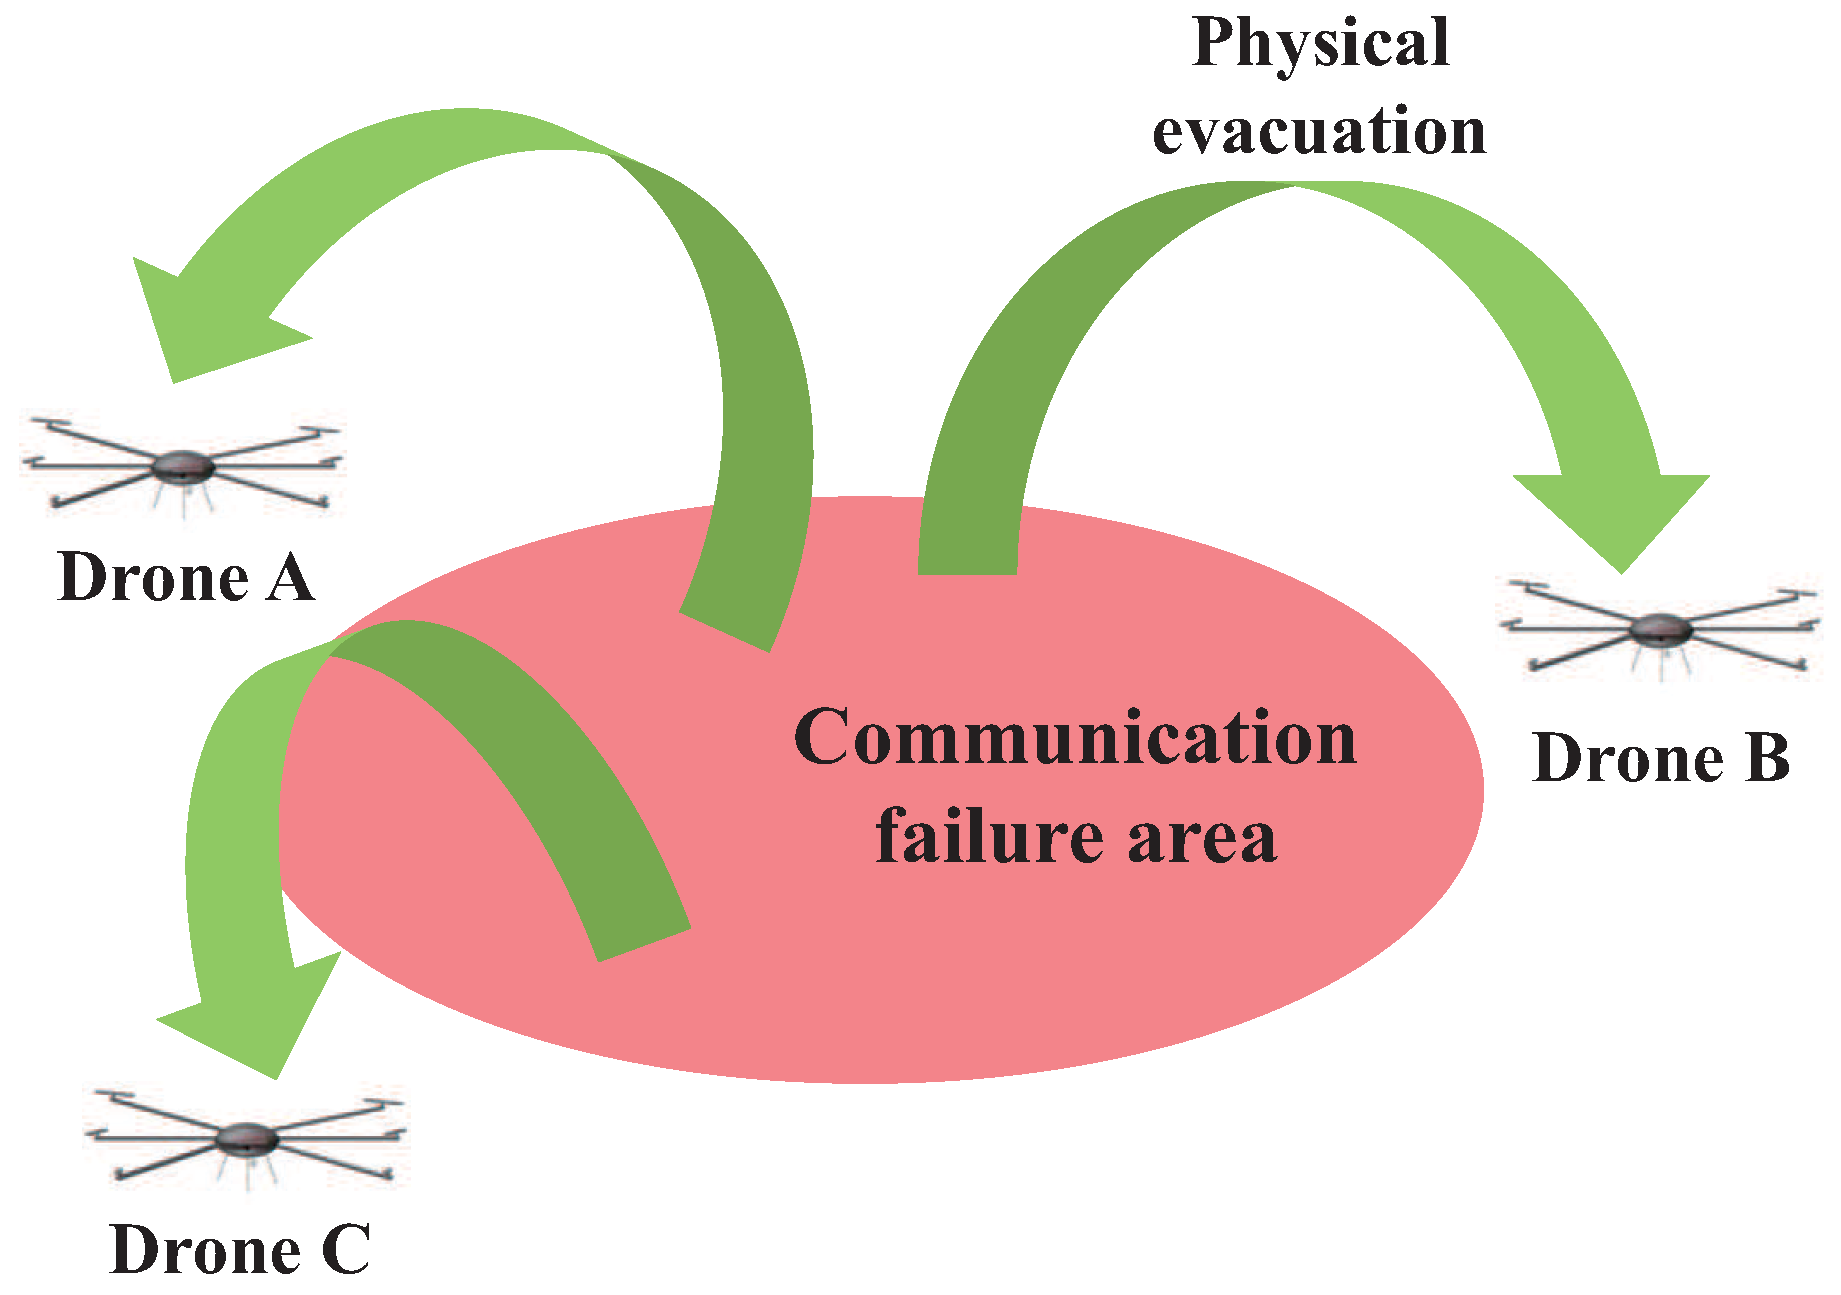 communication failure Communication fails for many reasons, and both the message sender and receiver contribute to the breakdown the effects of communication failure range from losing sight of group goals to more immediate problems like safety hazards and regulatory issues.